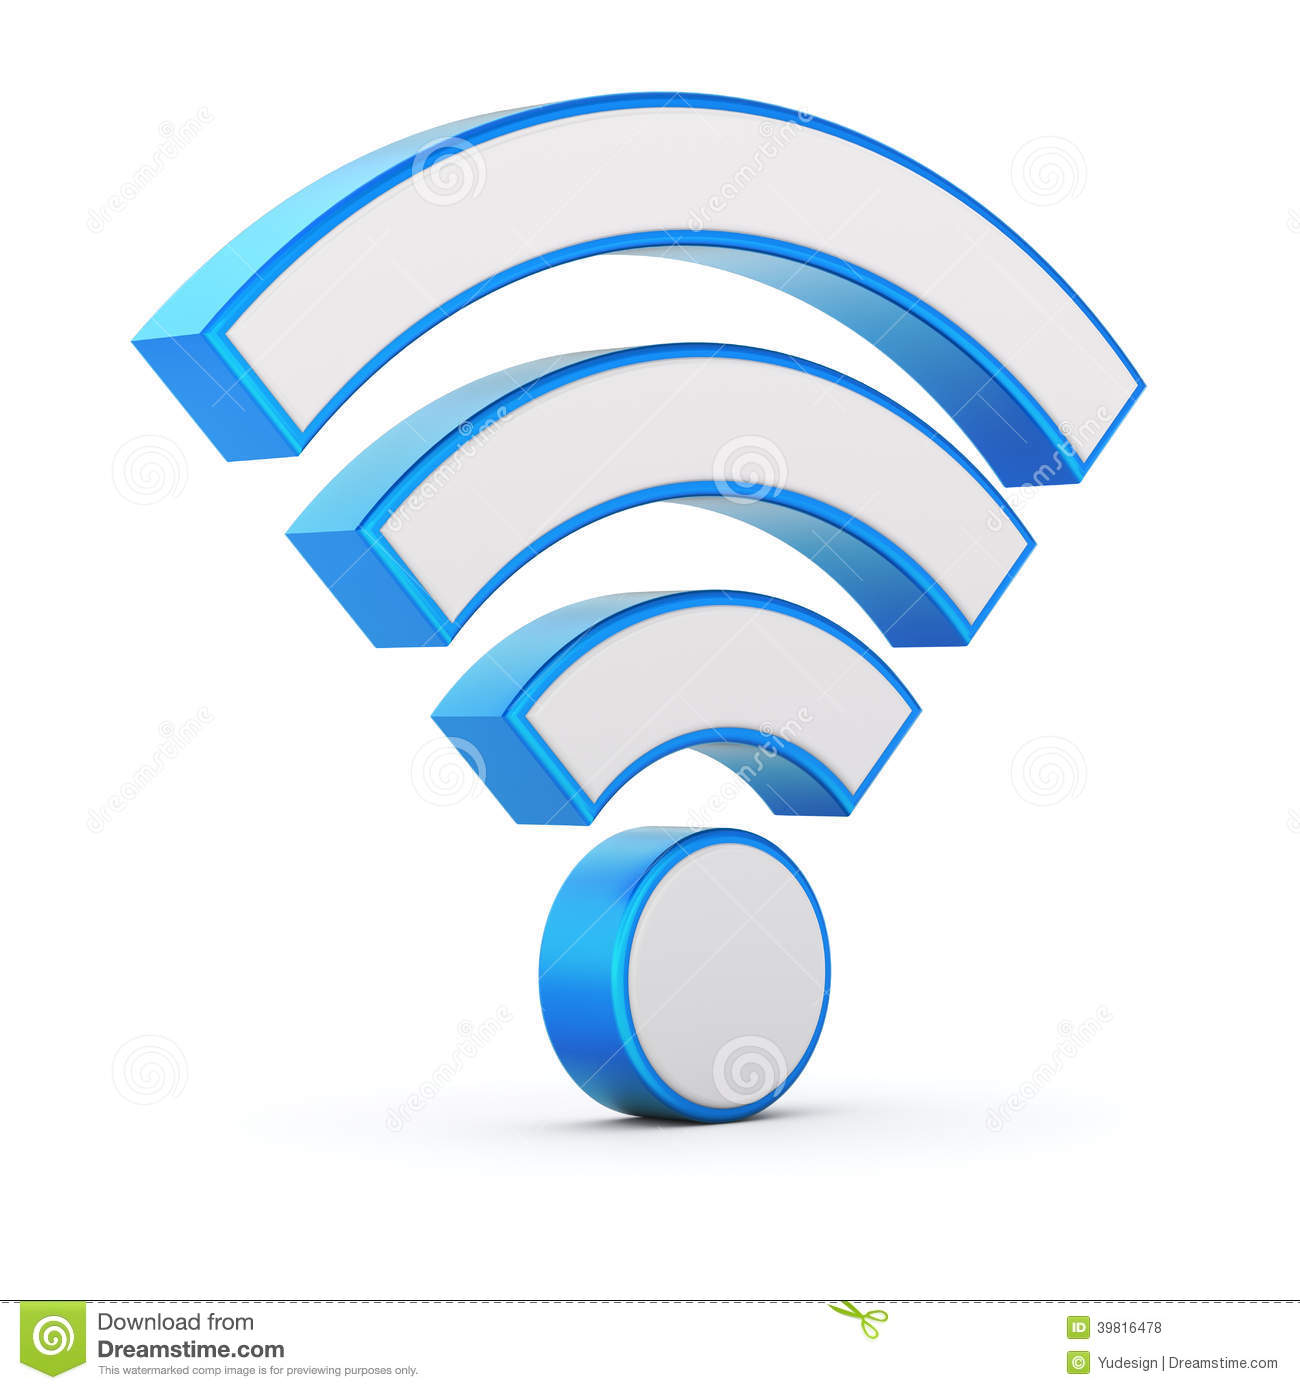 Wifi Symbol Stock Illustration Illustration Of Mobile 39816478